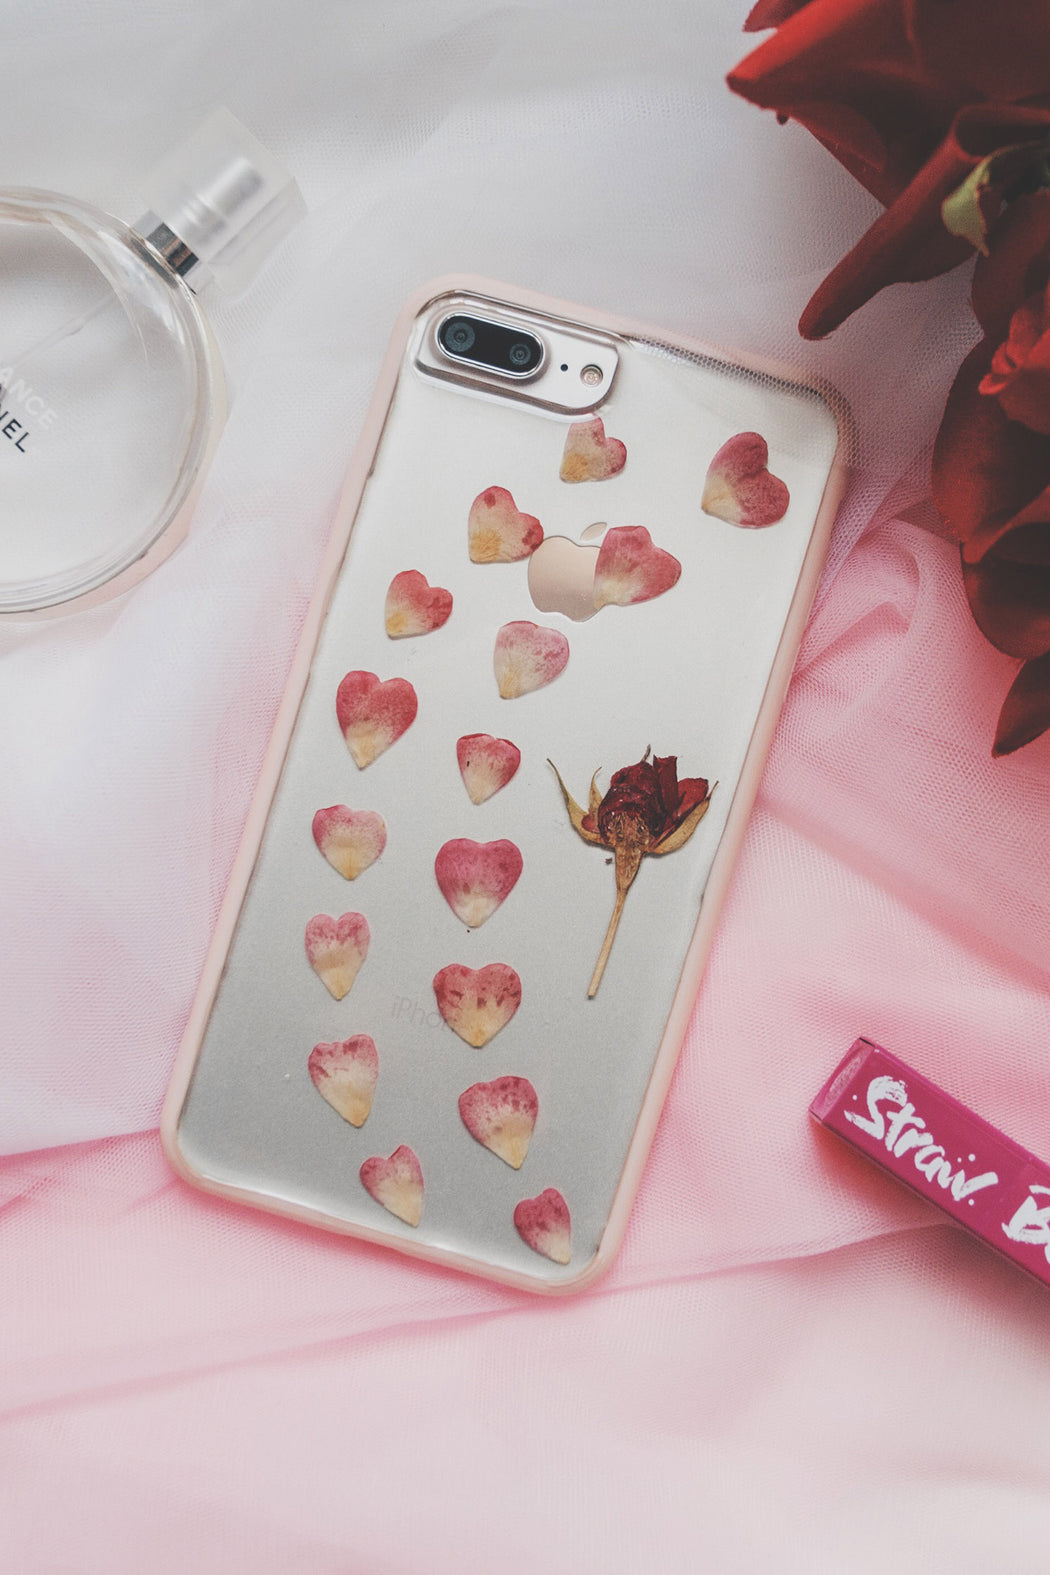 pressed_rose_flower_floral_protective_iphone_7_plus_8_plus_bumper_case_floral_neverland_floralfy_rose_i_love_you